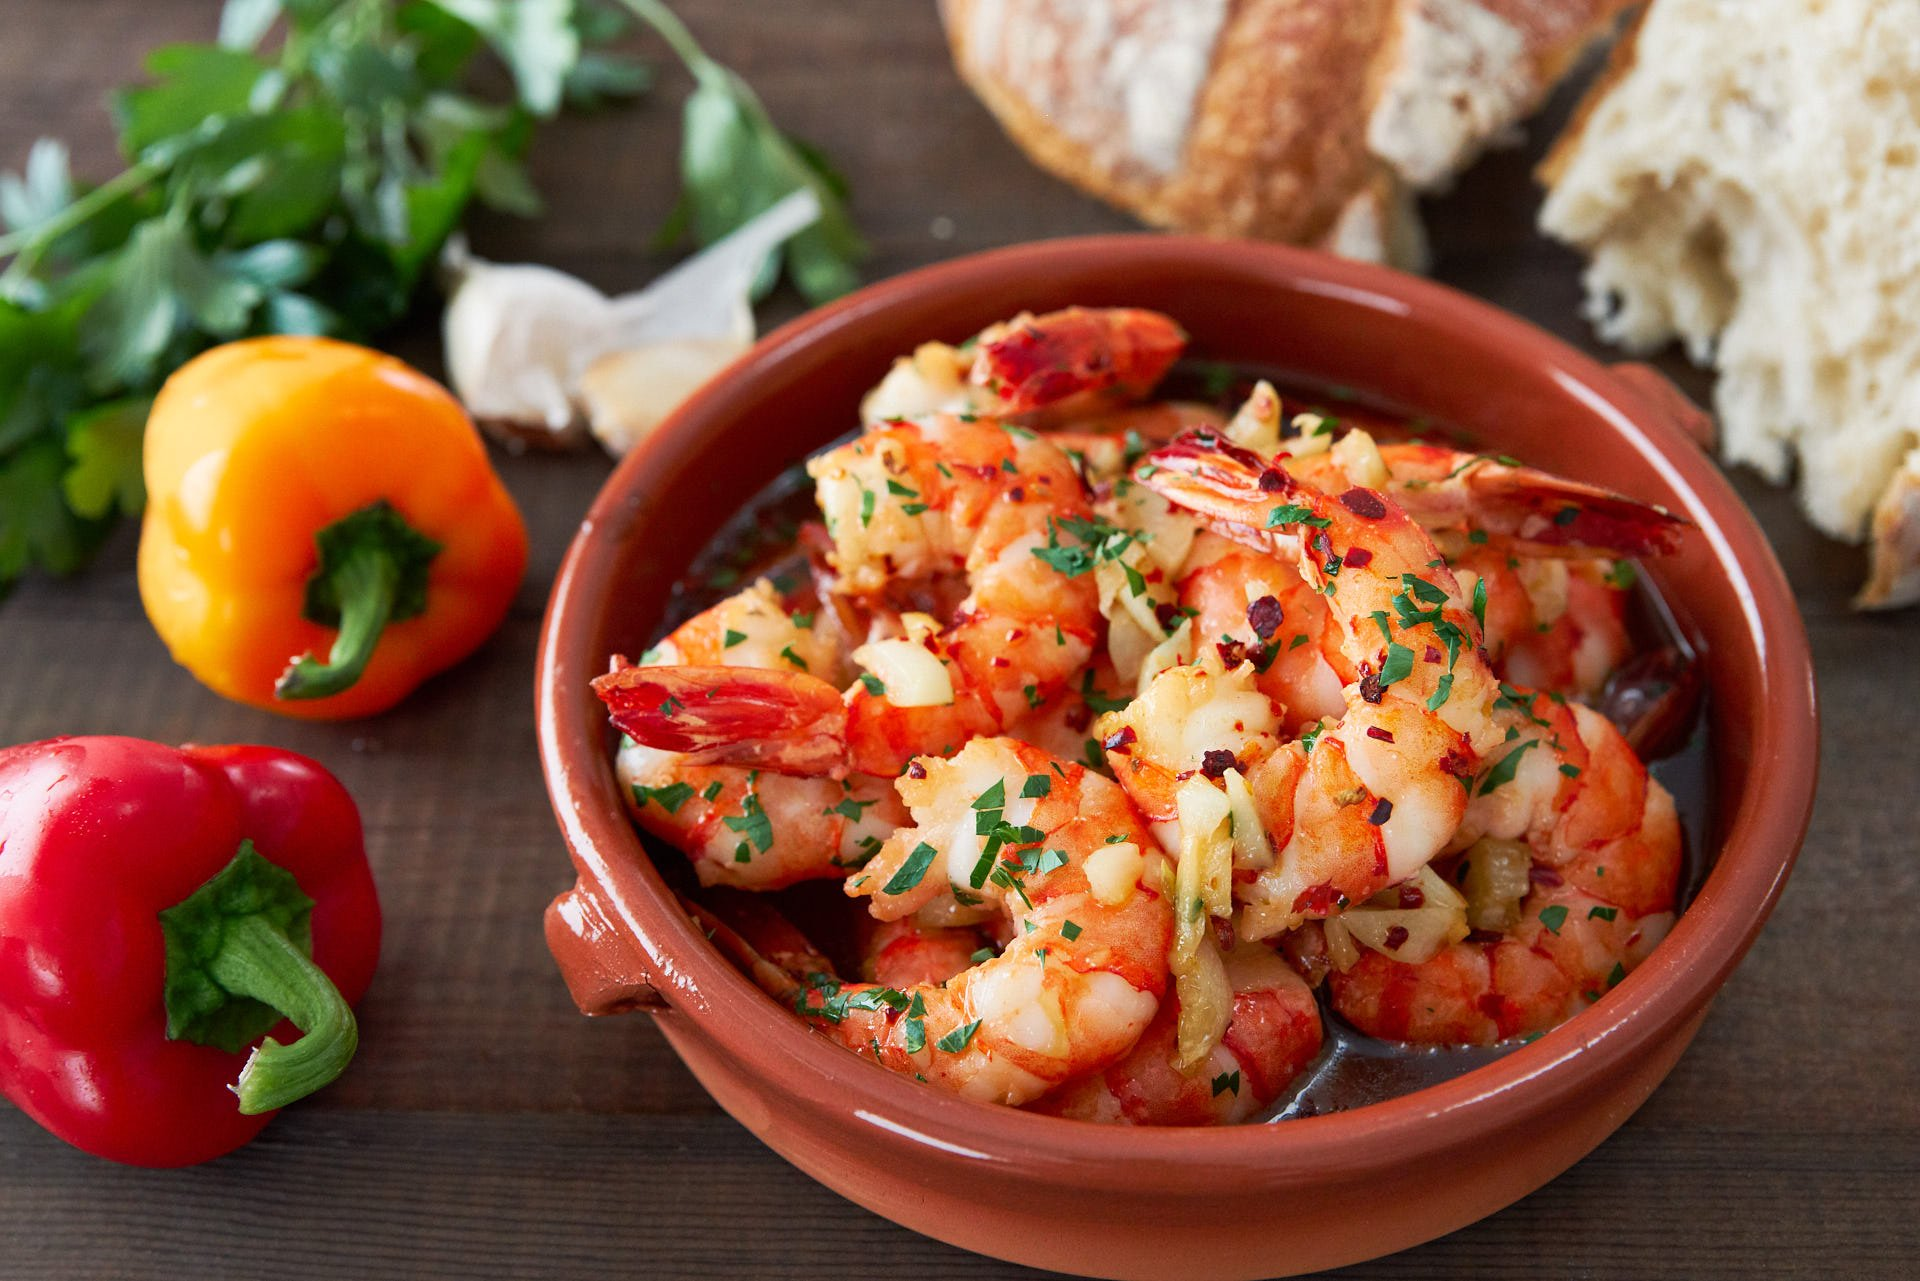 Savory and delicious, Spanish Garlic Shrimp (Gambas al Ajillo) is an easy appetizer that comes together in minutes. Crusty bread is a must, to dip in the irresistable garlic shrimp oil.